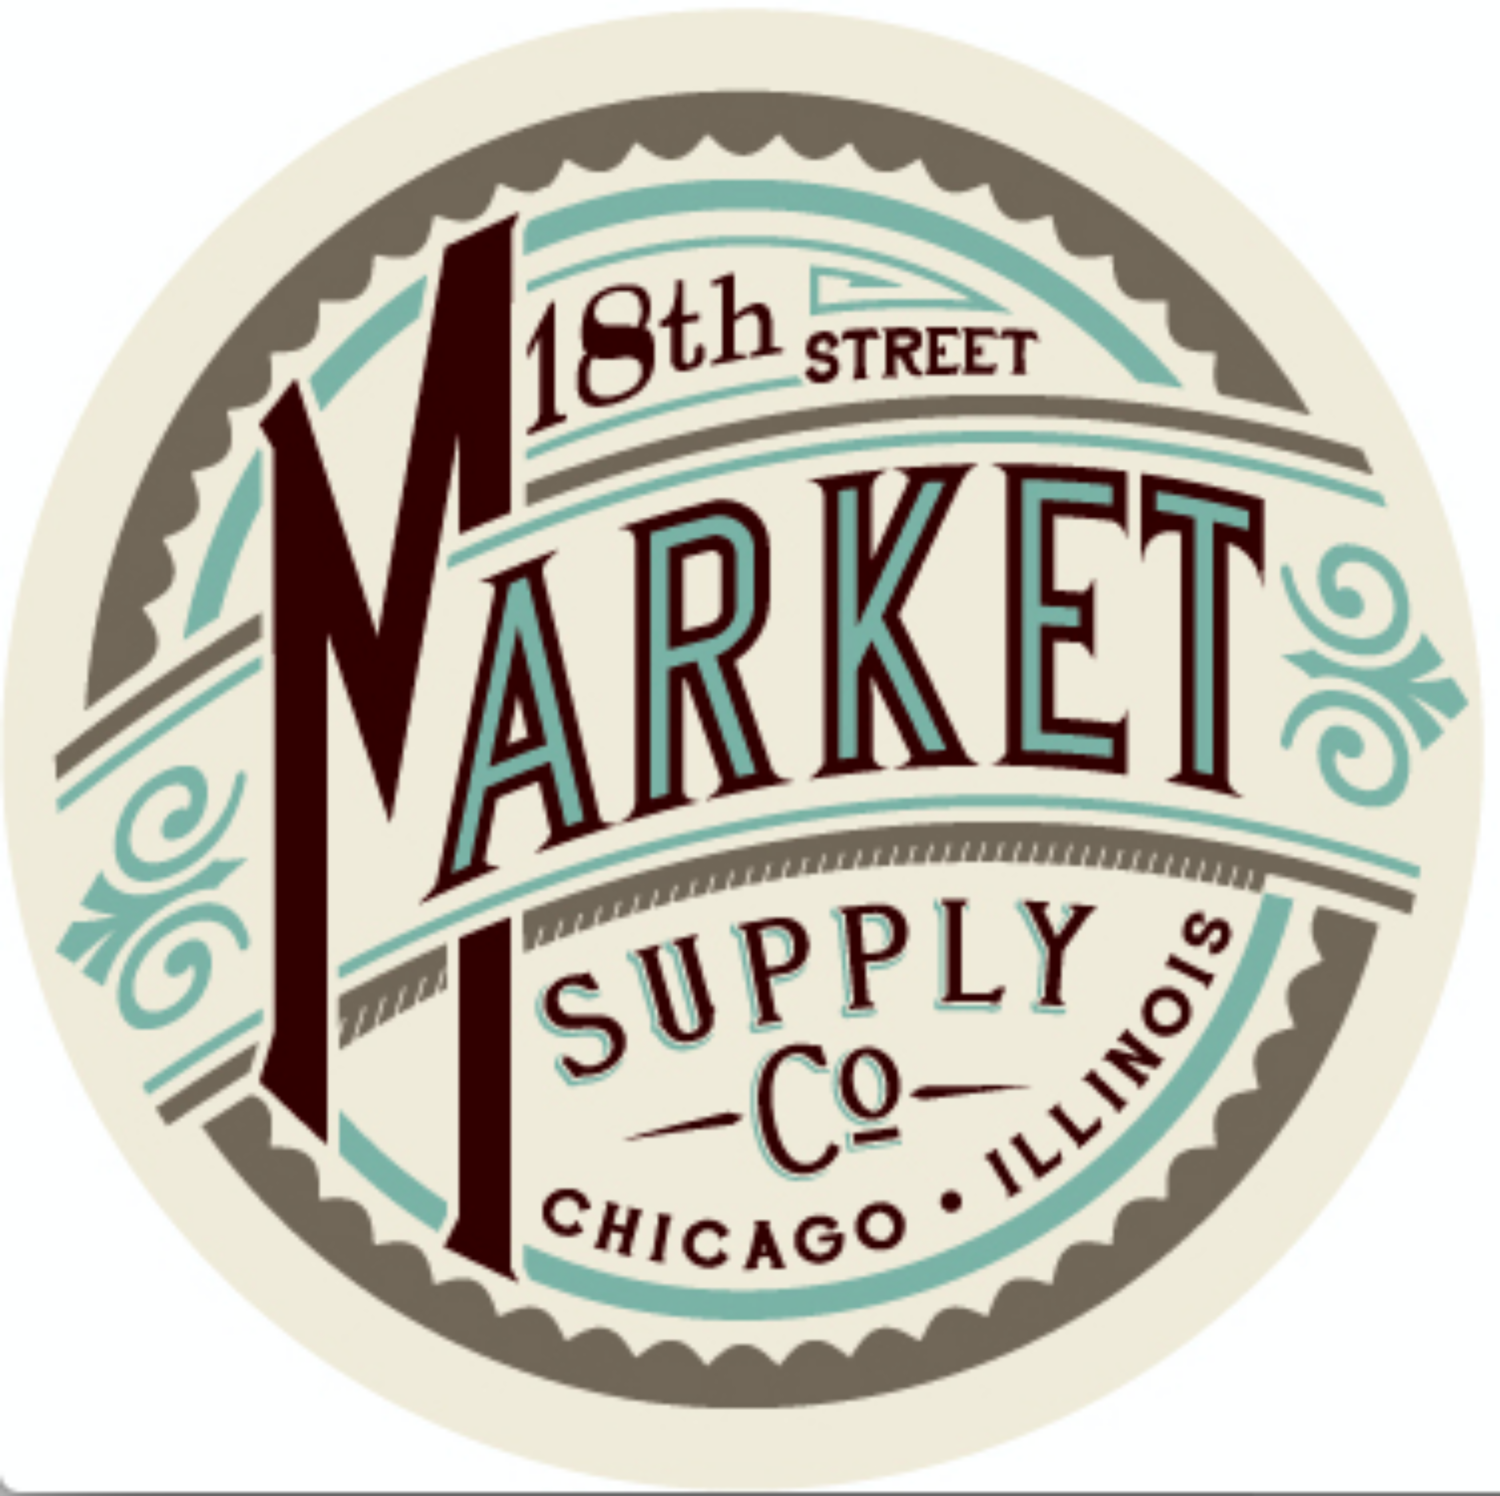 Market Supply Co.